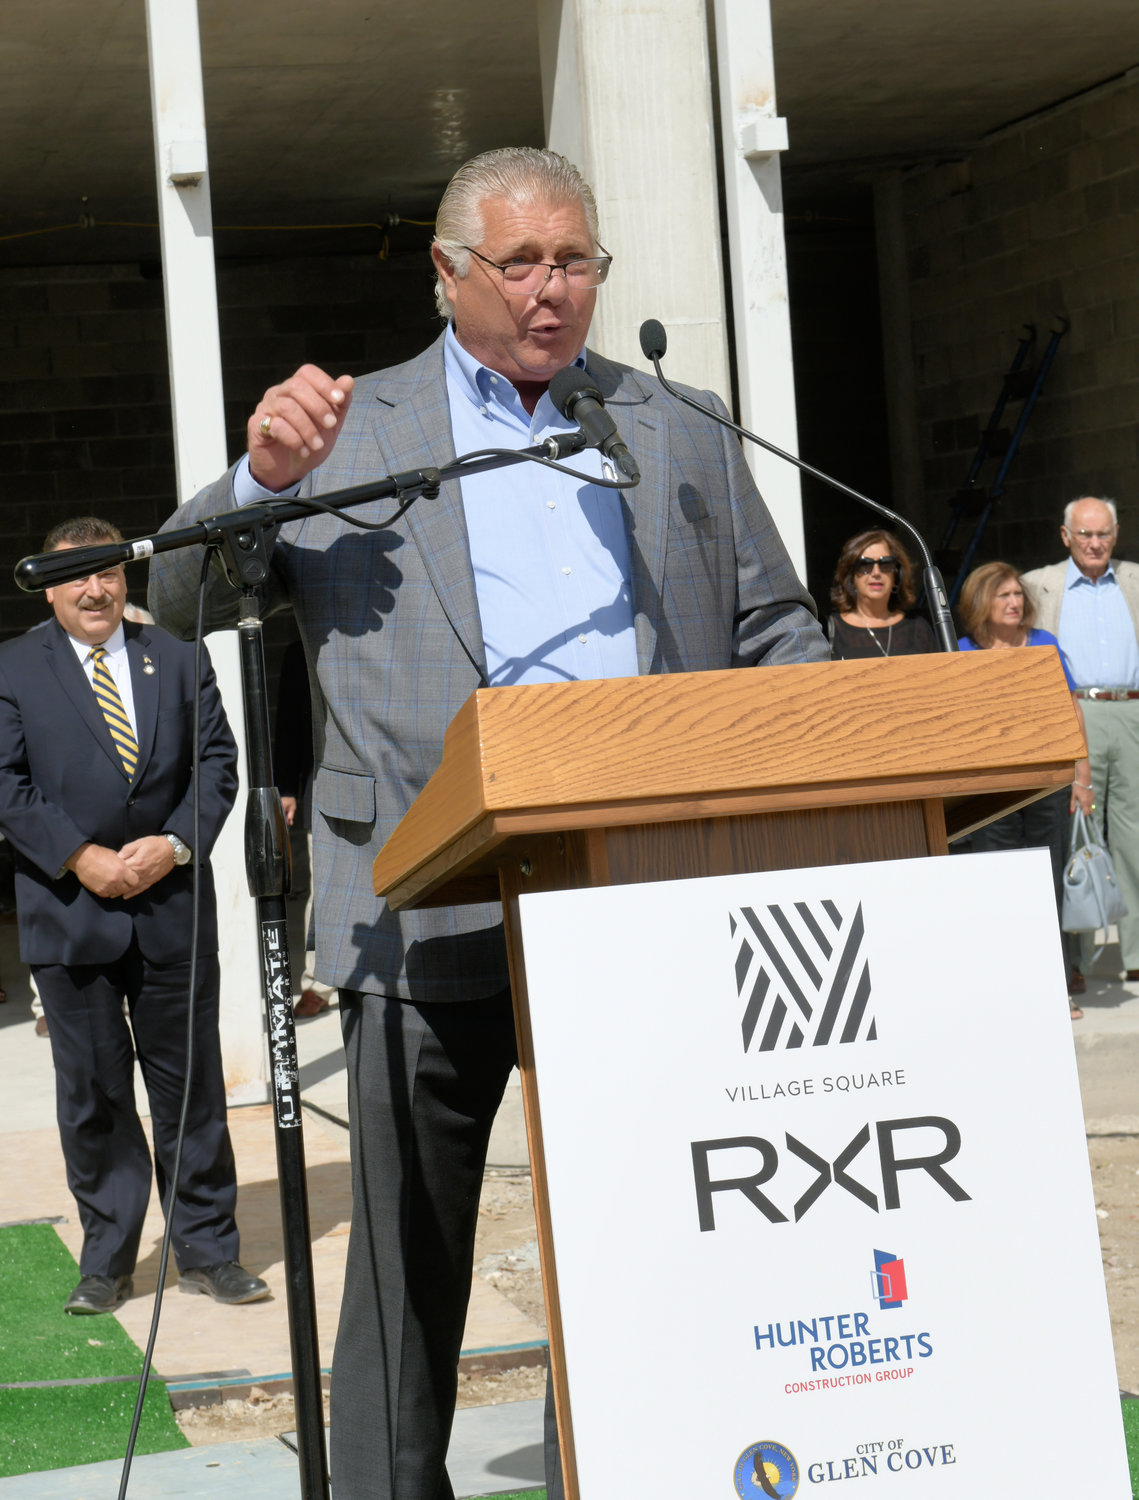 Joe Graziose, RXR Realty's executive vice president of residential development and construction, said the redevelopment at Village Square and Garvies Point would bring prosperity to Glen Cove's downtown area.